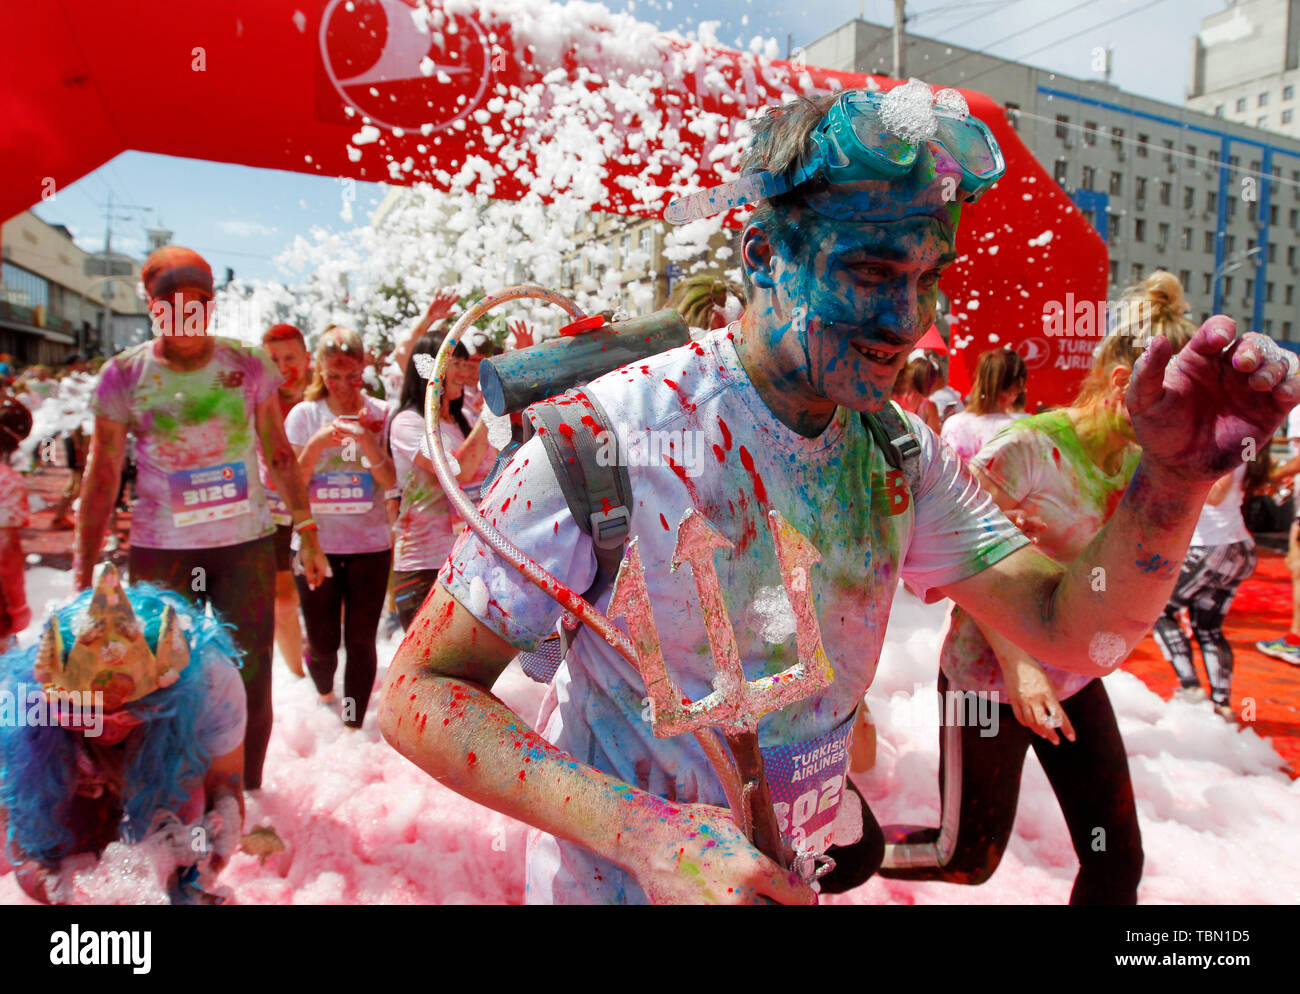 A participant runs while showered with colours during the event. The Color Run, also known as 'the happiest 5,000 meters on the planet', is an event series and paint race, its first event was in the United States in January 2012 since then the run has spread across the globe leaving a trail of color and happy runners across different continents and countries. The untimed event has no winners or prizes, but runners are showered with colored powder, made of food-grade corn starch, at stations along the run. In Ukrainian capital the first time Kyiv Color Run started in 2014. - Stock Image